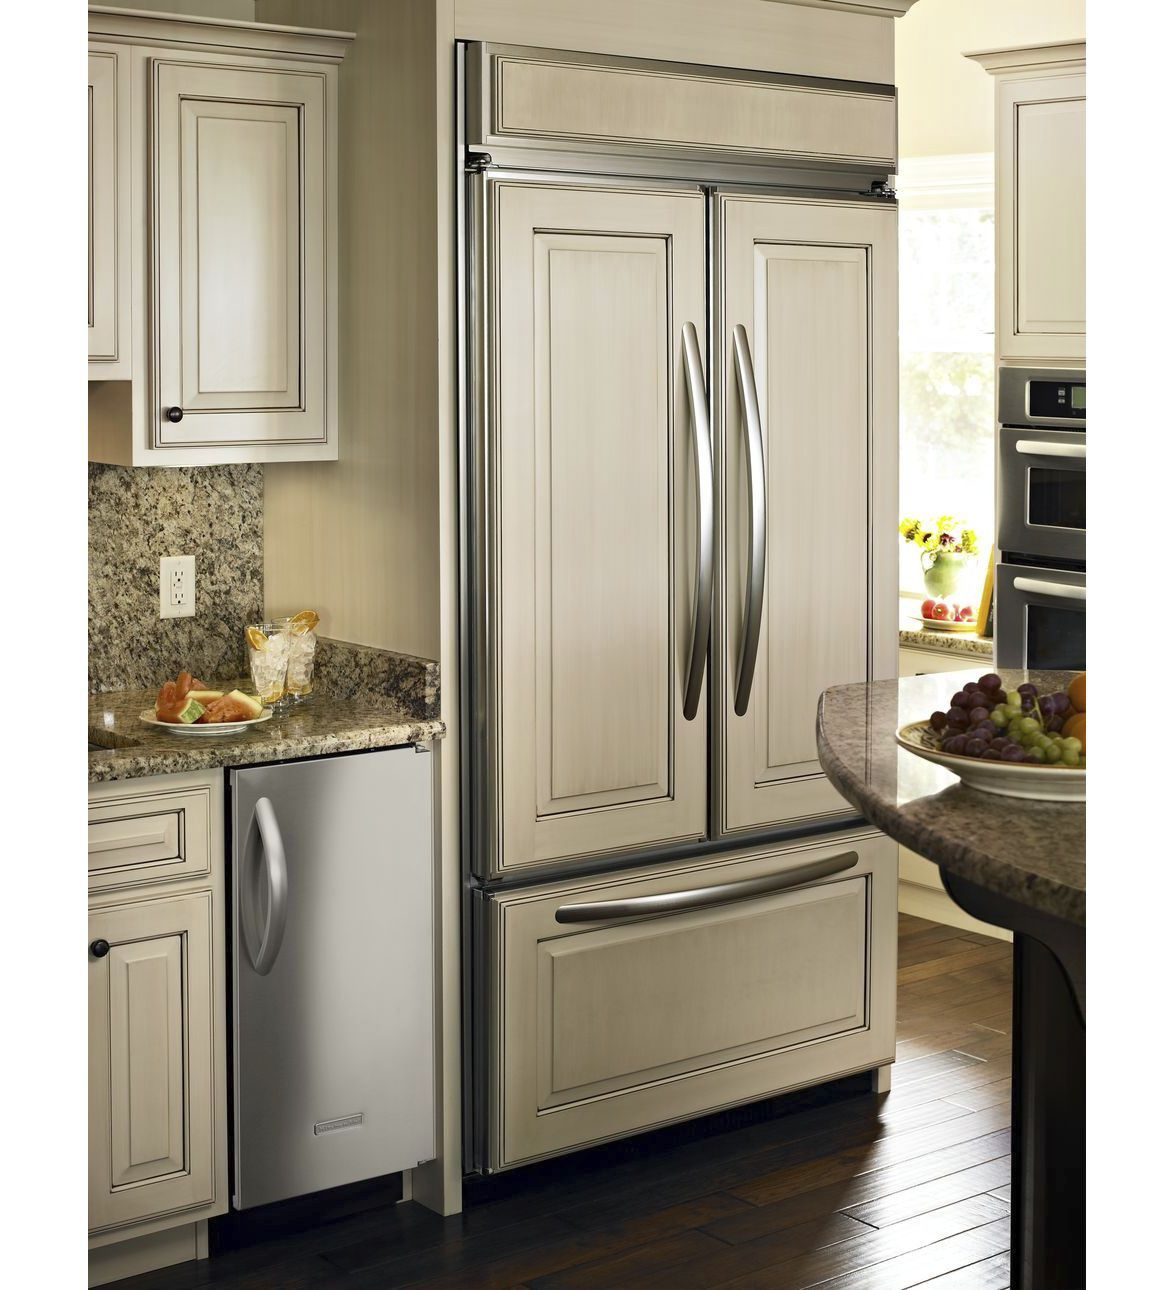 American Refrigerator / White / Built In ...